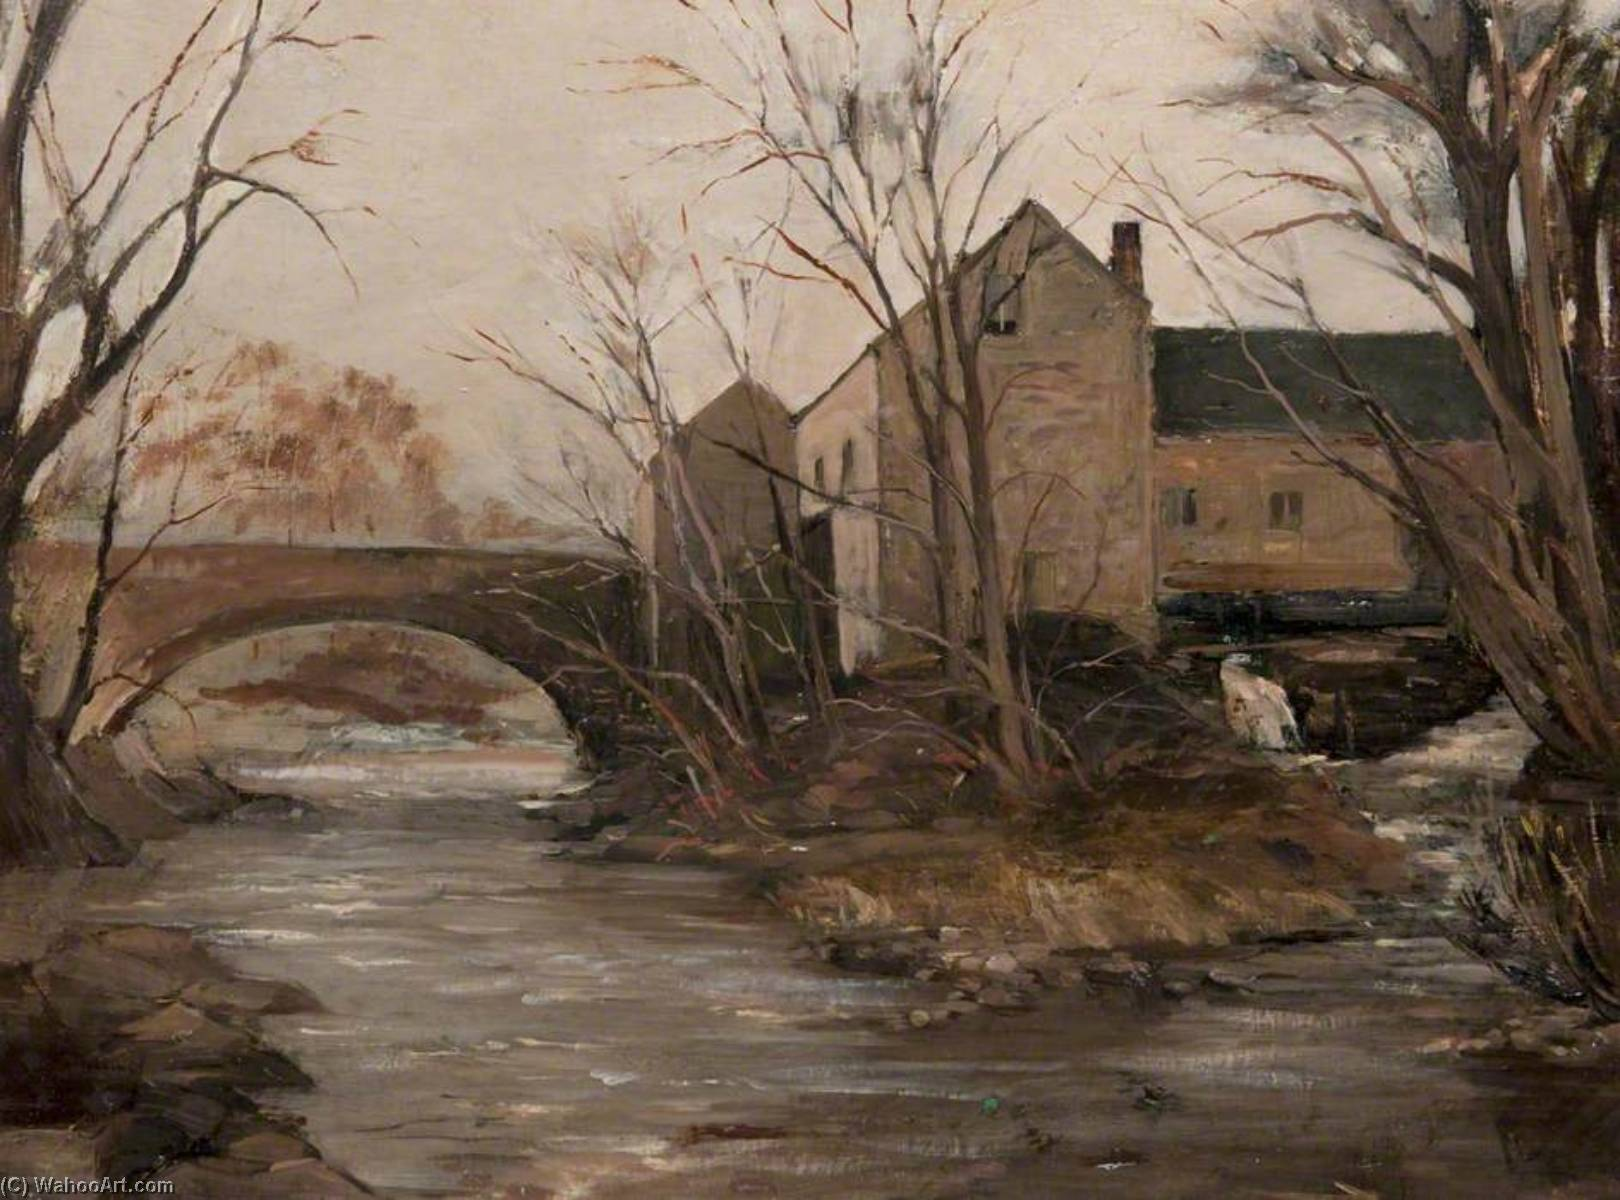 Waterfoot Mill and Bridge by John Elliot Maguire | Art Reproduction | WahooArt.com